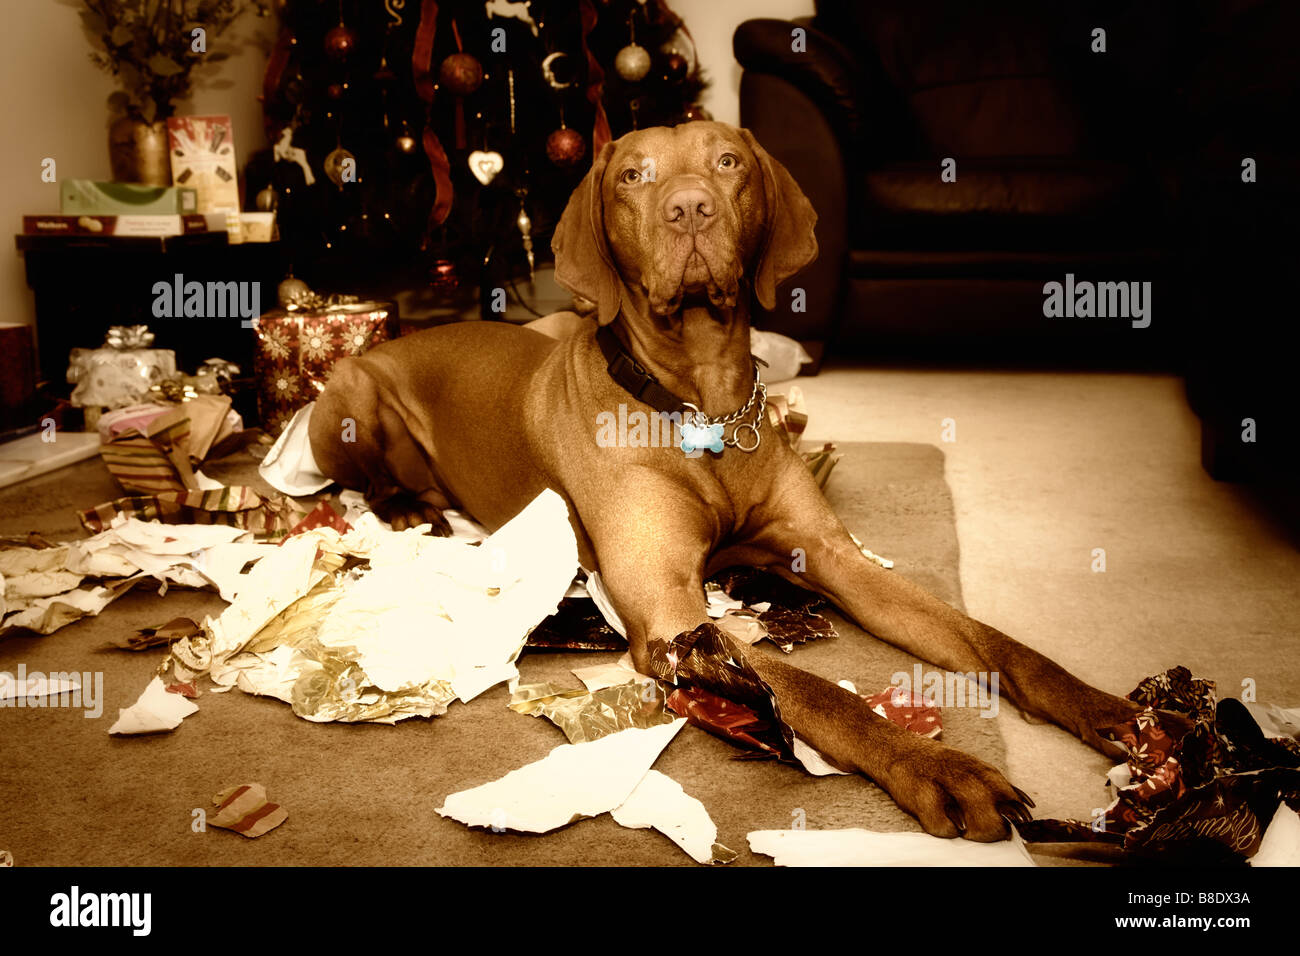 Christmas scene of Hungarian Vizsla dog lying amongst shredded xmas wrapping paper that he's just chewed up! Stock Photo